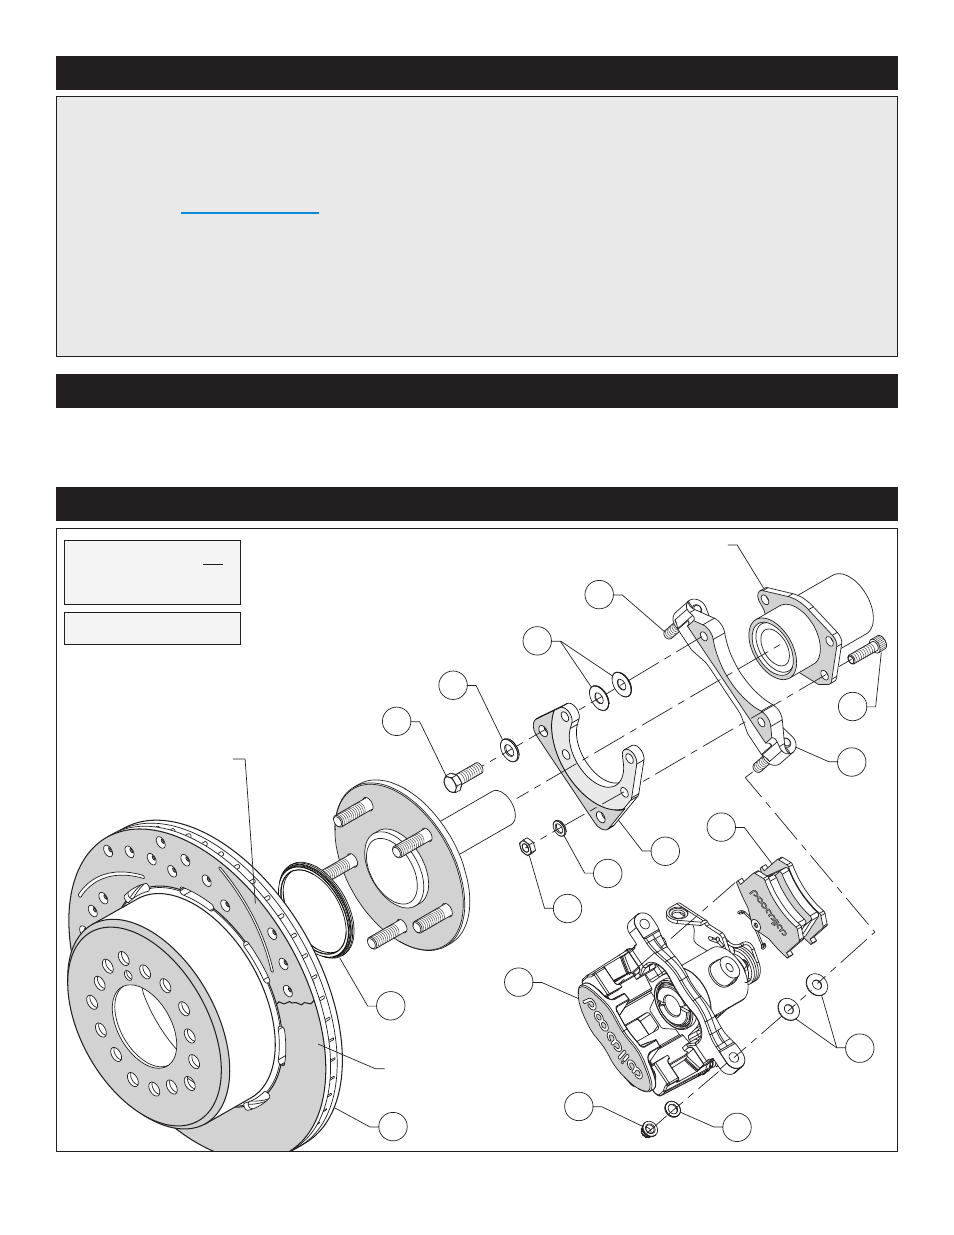 Exploded Assembly Diagram  Important Notice